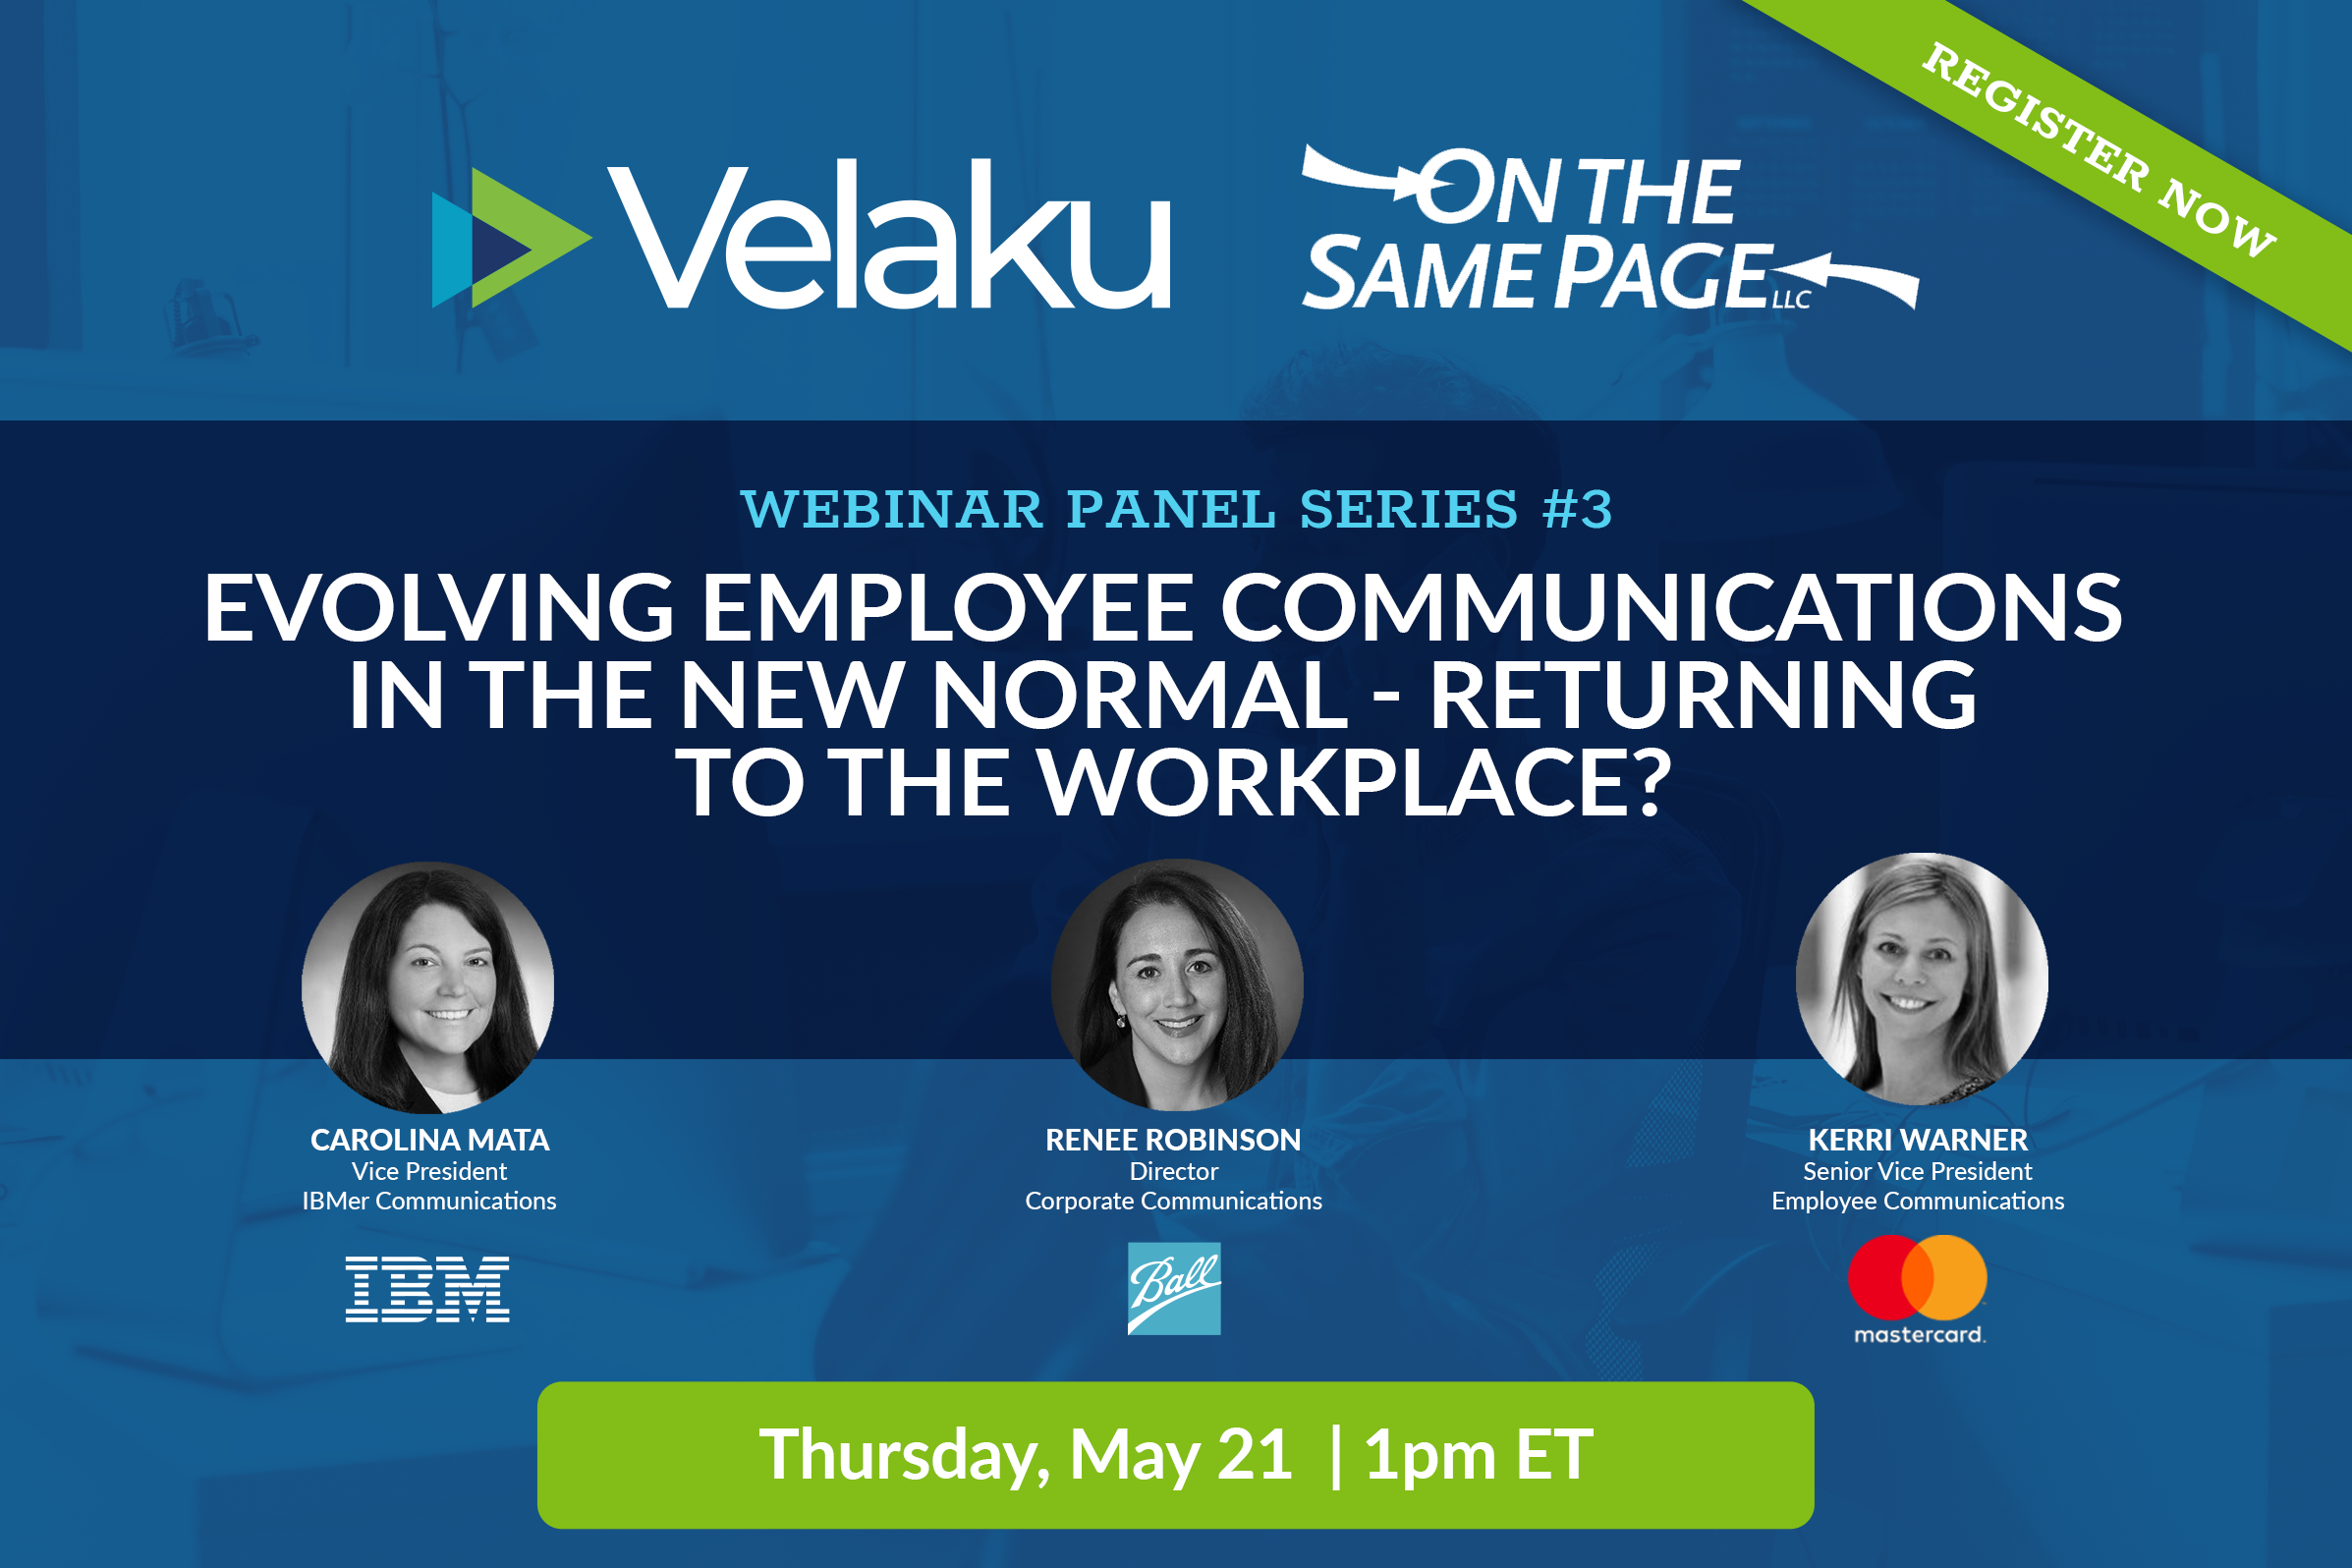 Webinar Panel #3: Evolving Employee Communications in The New Normal – Returning to the Workplace?